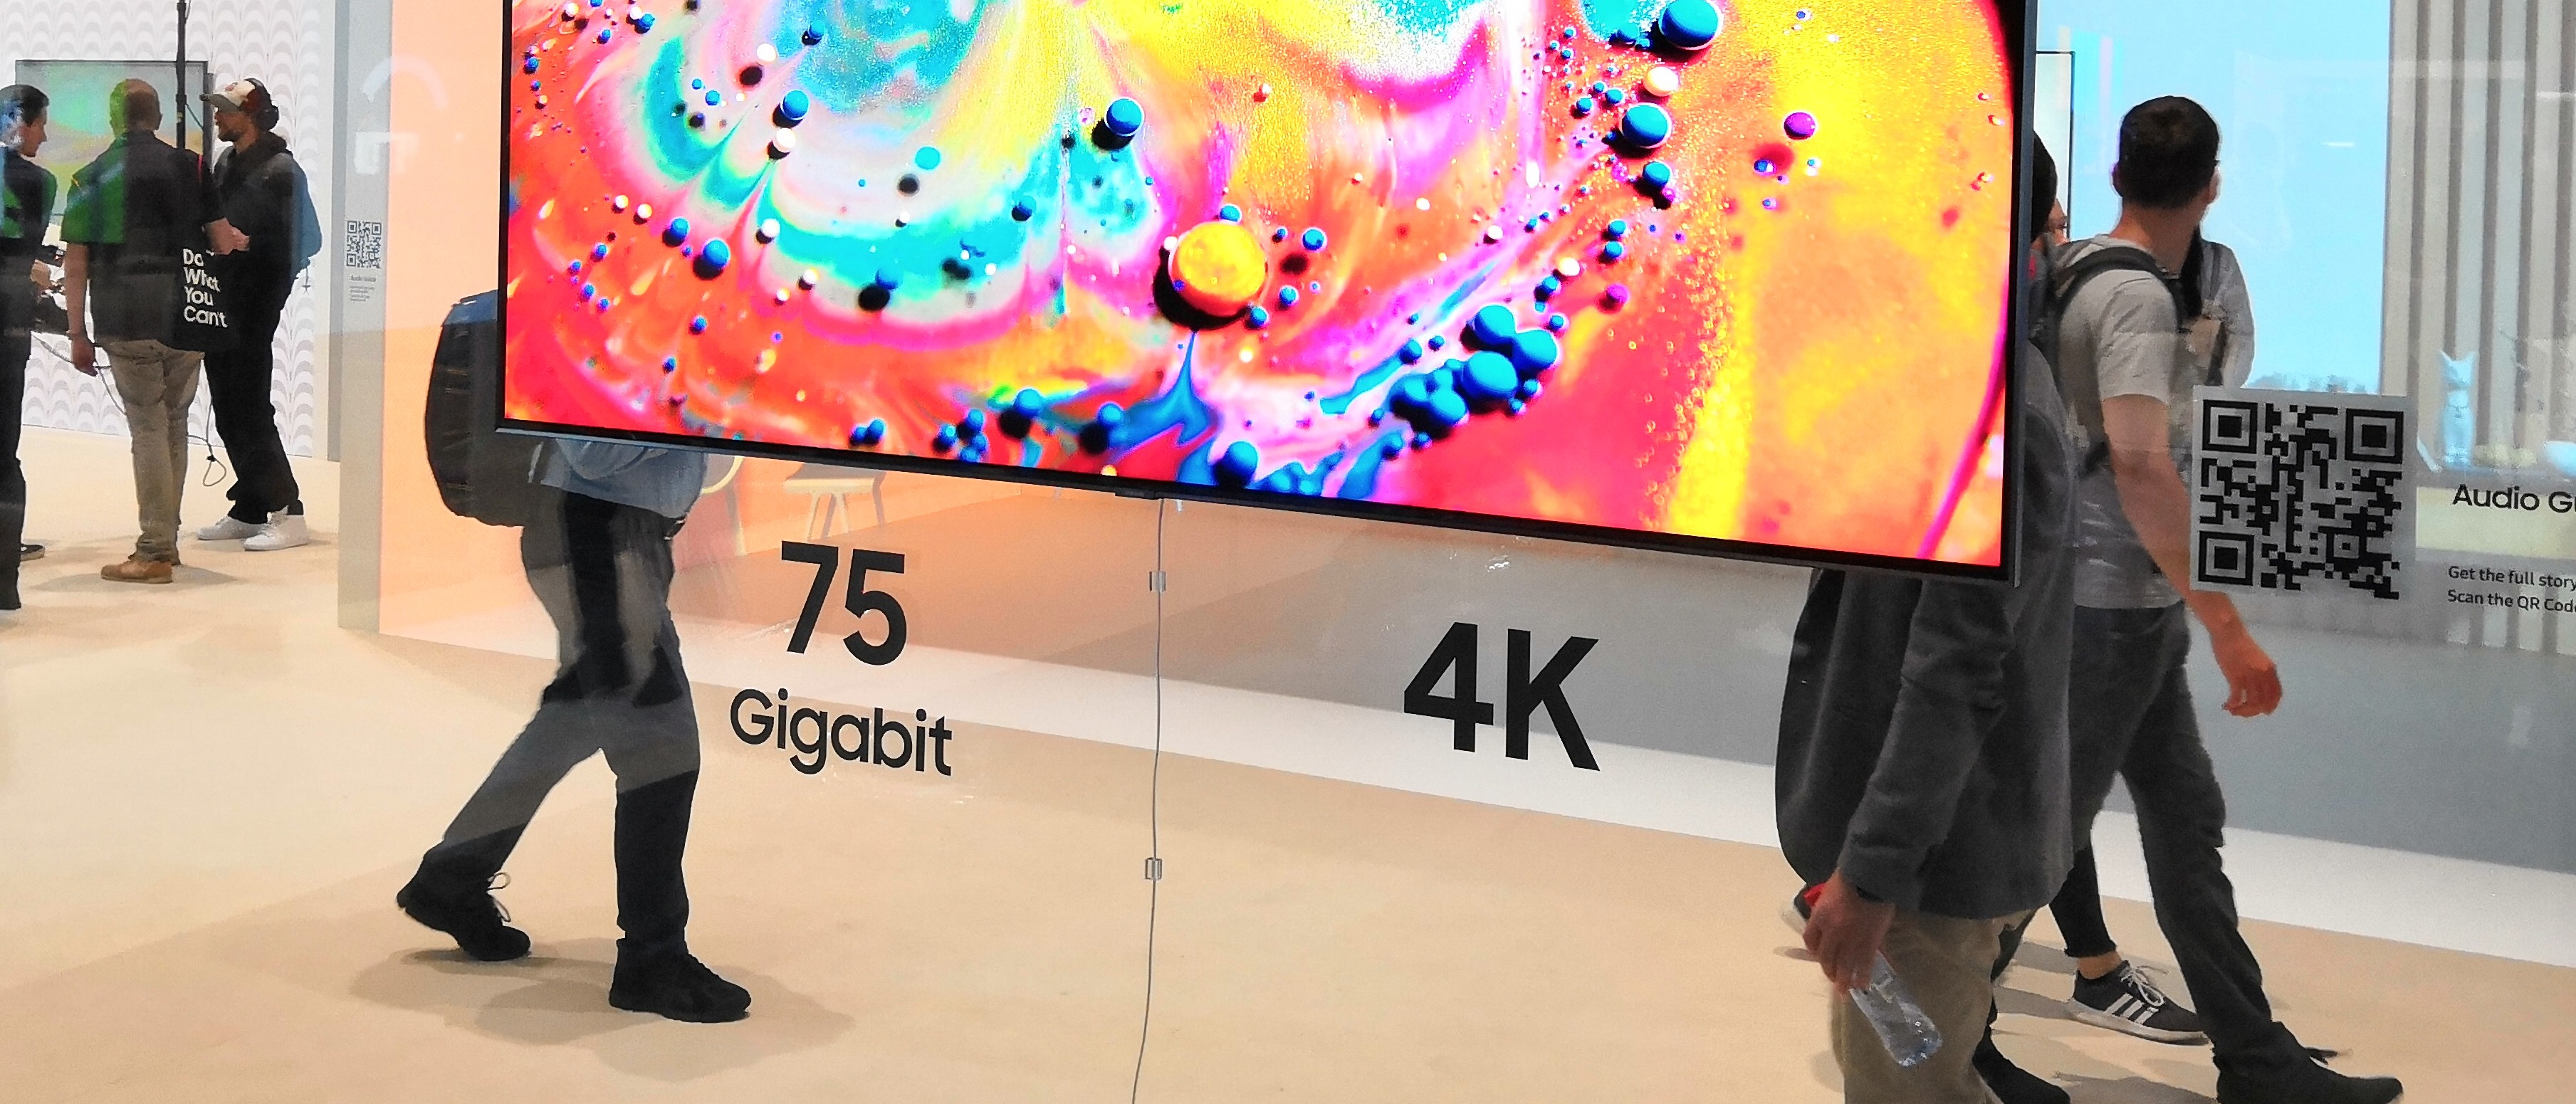 Samsung's One Invisible Connection: 75 Gbps and 230W in a Ultra Thin